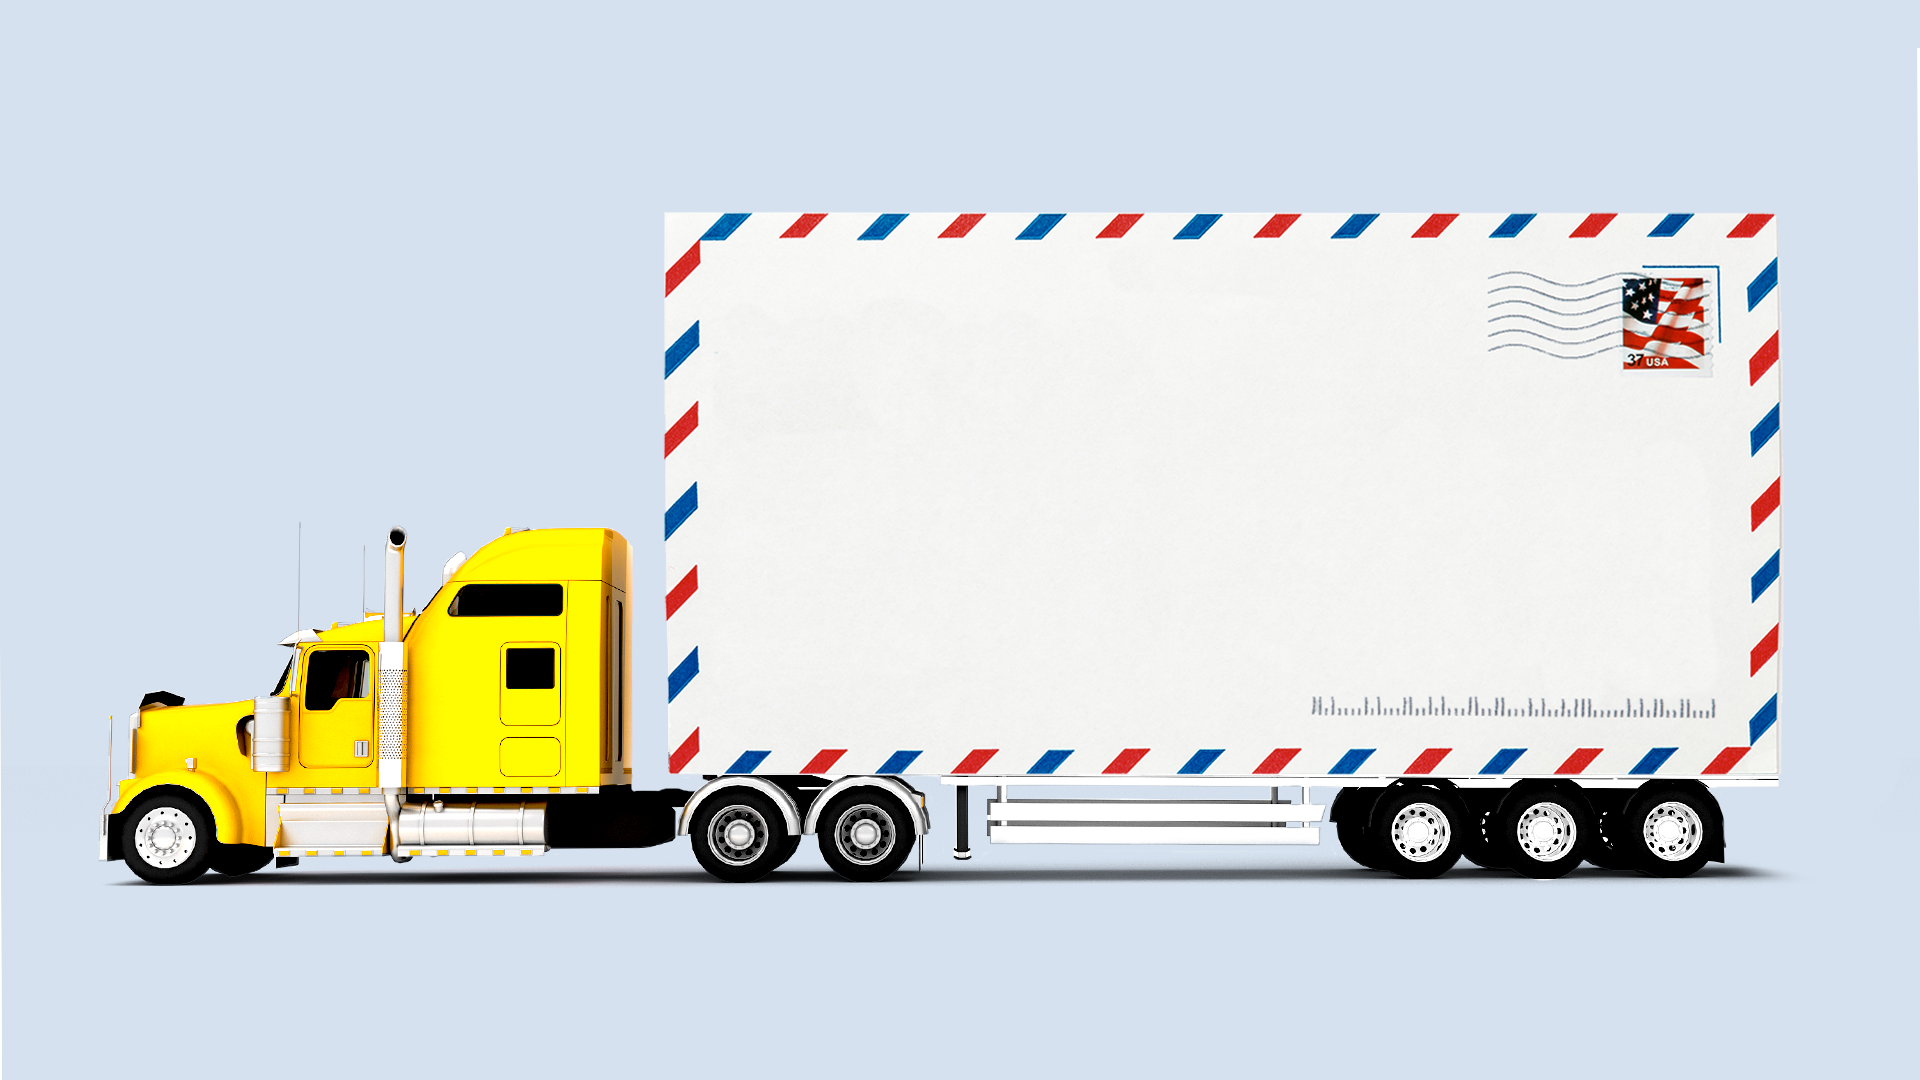 Illustration of an 18-wheeler with an envelope as the semi-trailer